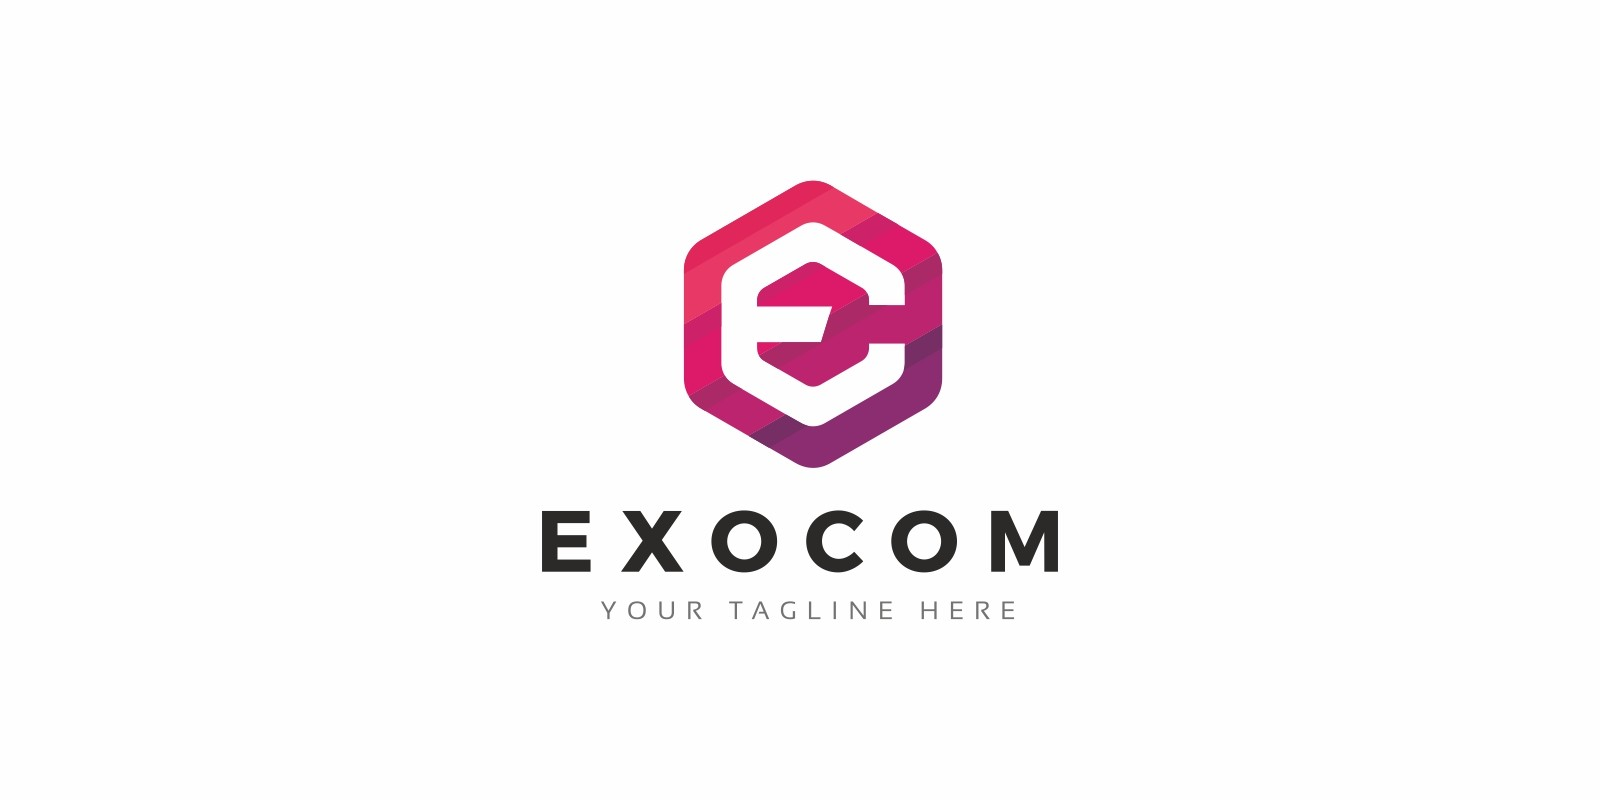 Exocom E Hexagon Logo